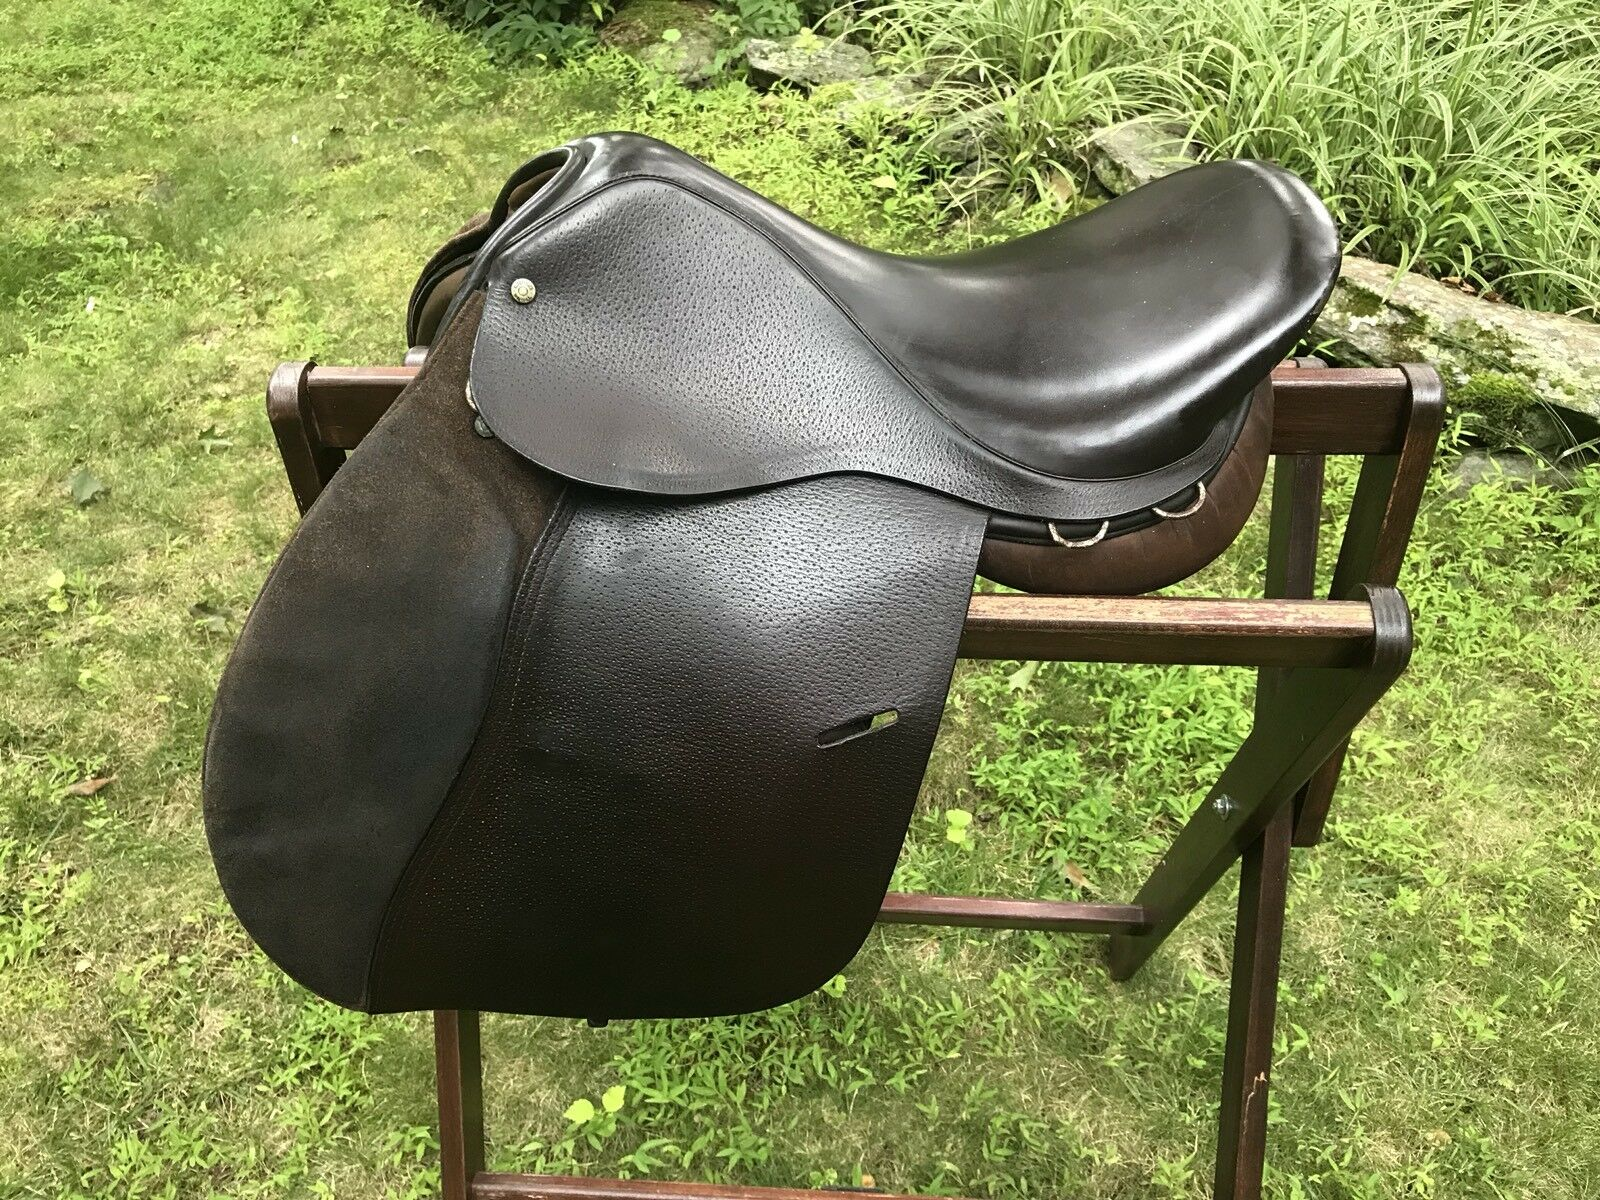 16   16.5 Jeffries Saddle, Med Tree, Long Flap (5'5 to 5'8), Made In England